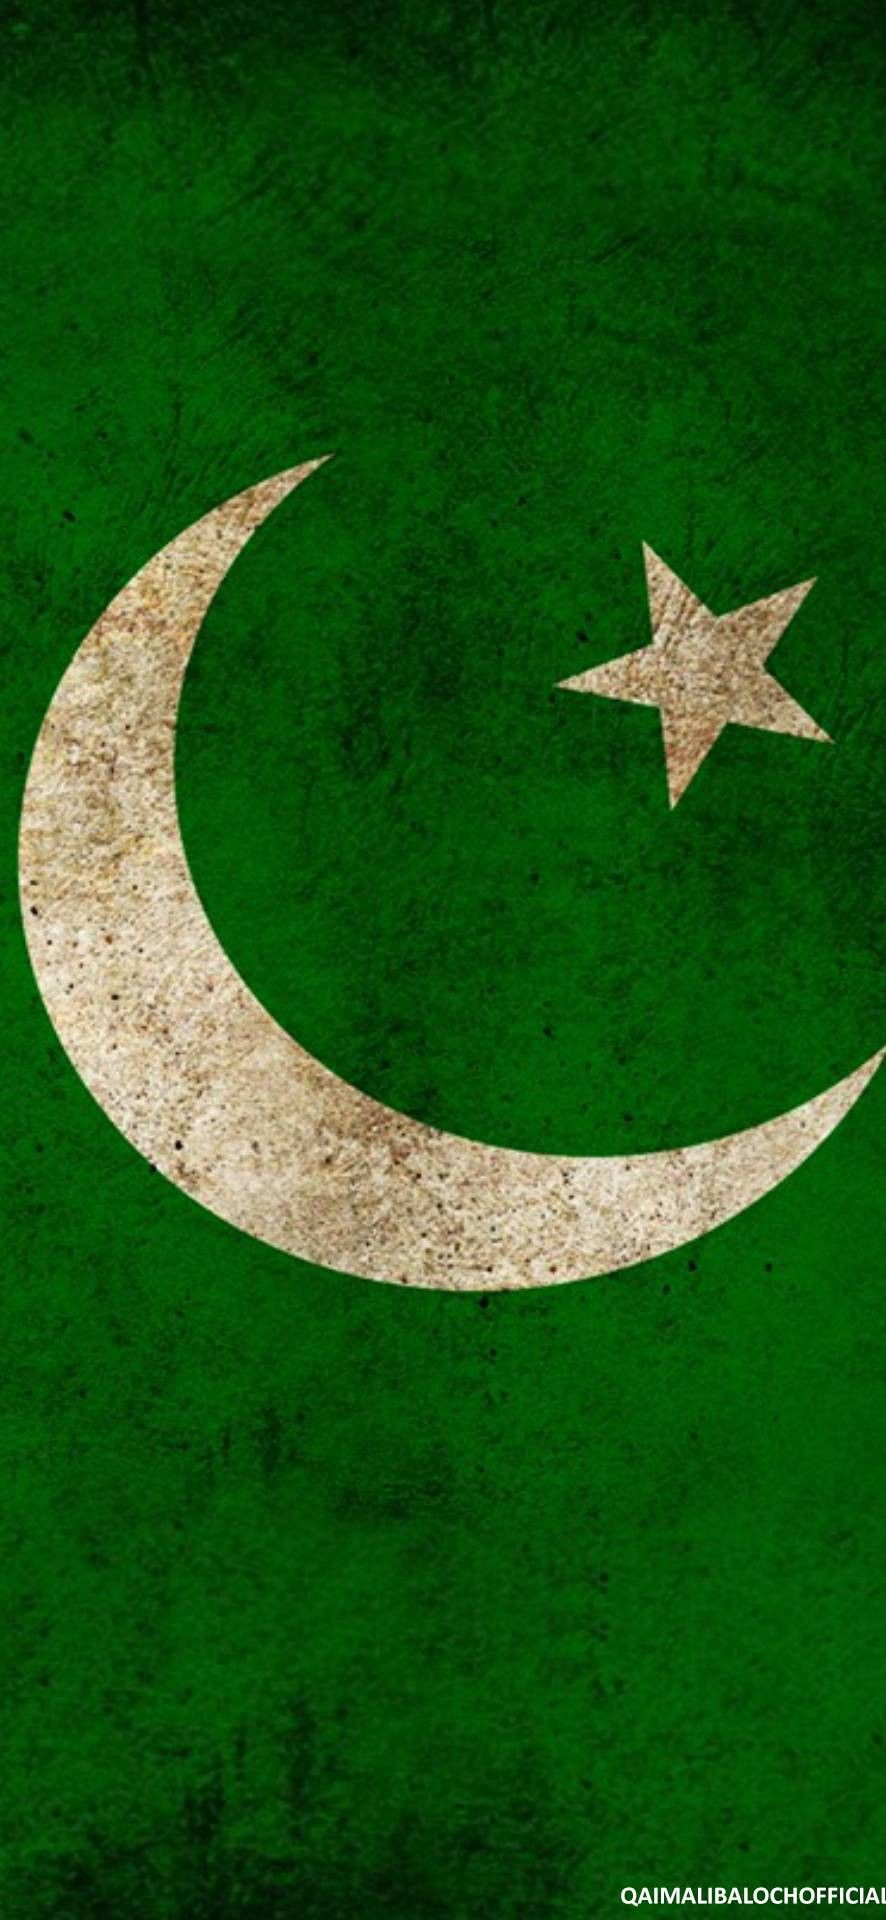 Pakistan Flag Hd Wallpaper Pakistan Flag Pakistan Wallpaper Pakistan Flag Wallpaper